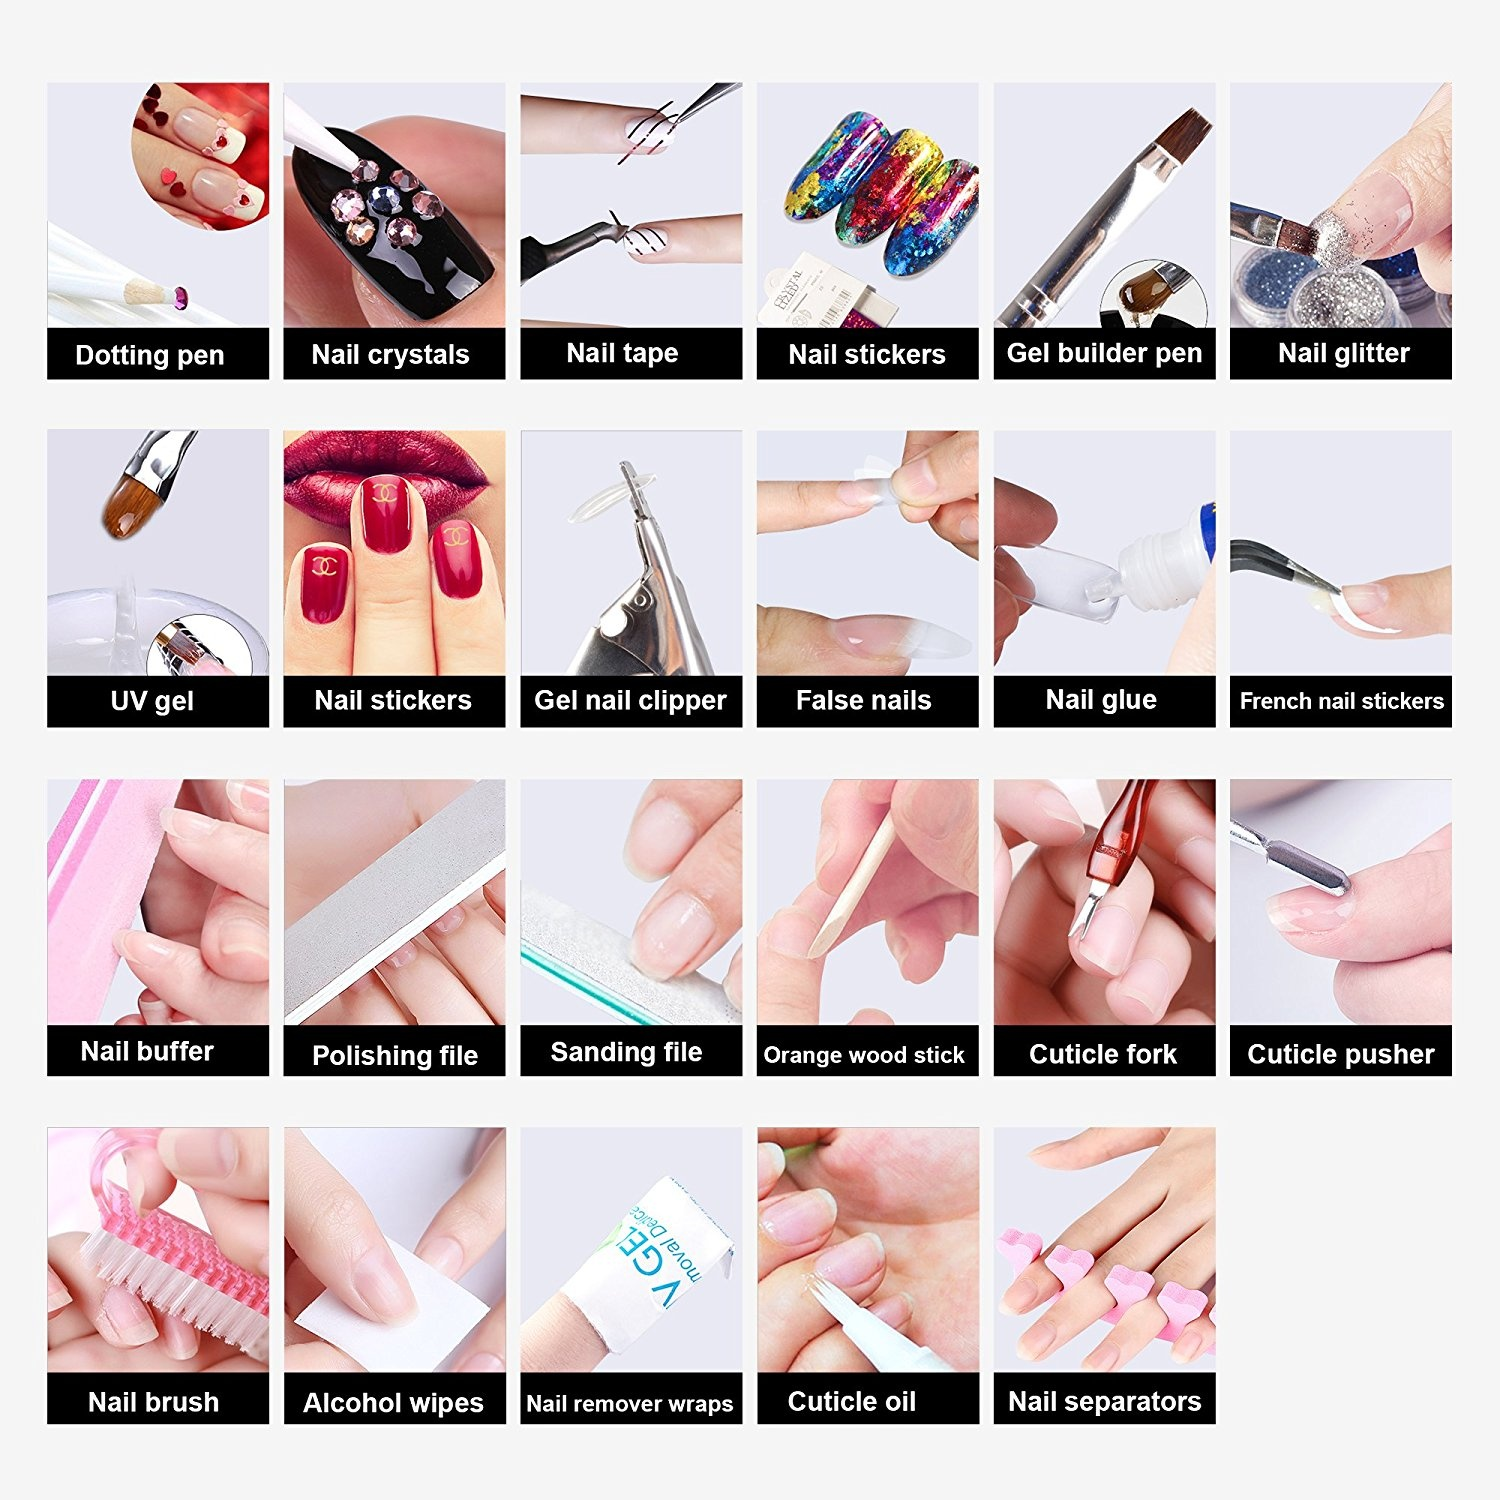 Led Gel Nail Starter Kit Beauty Beauty: Buy Online from Fishpond.co.nz